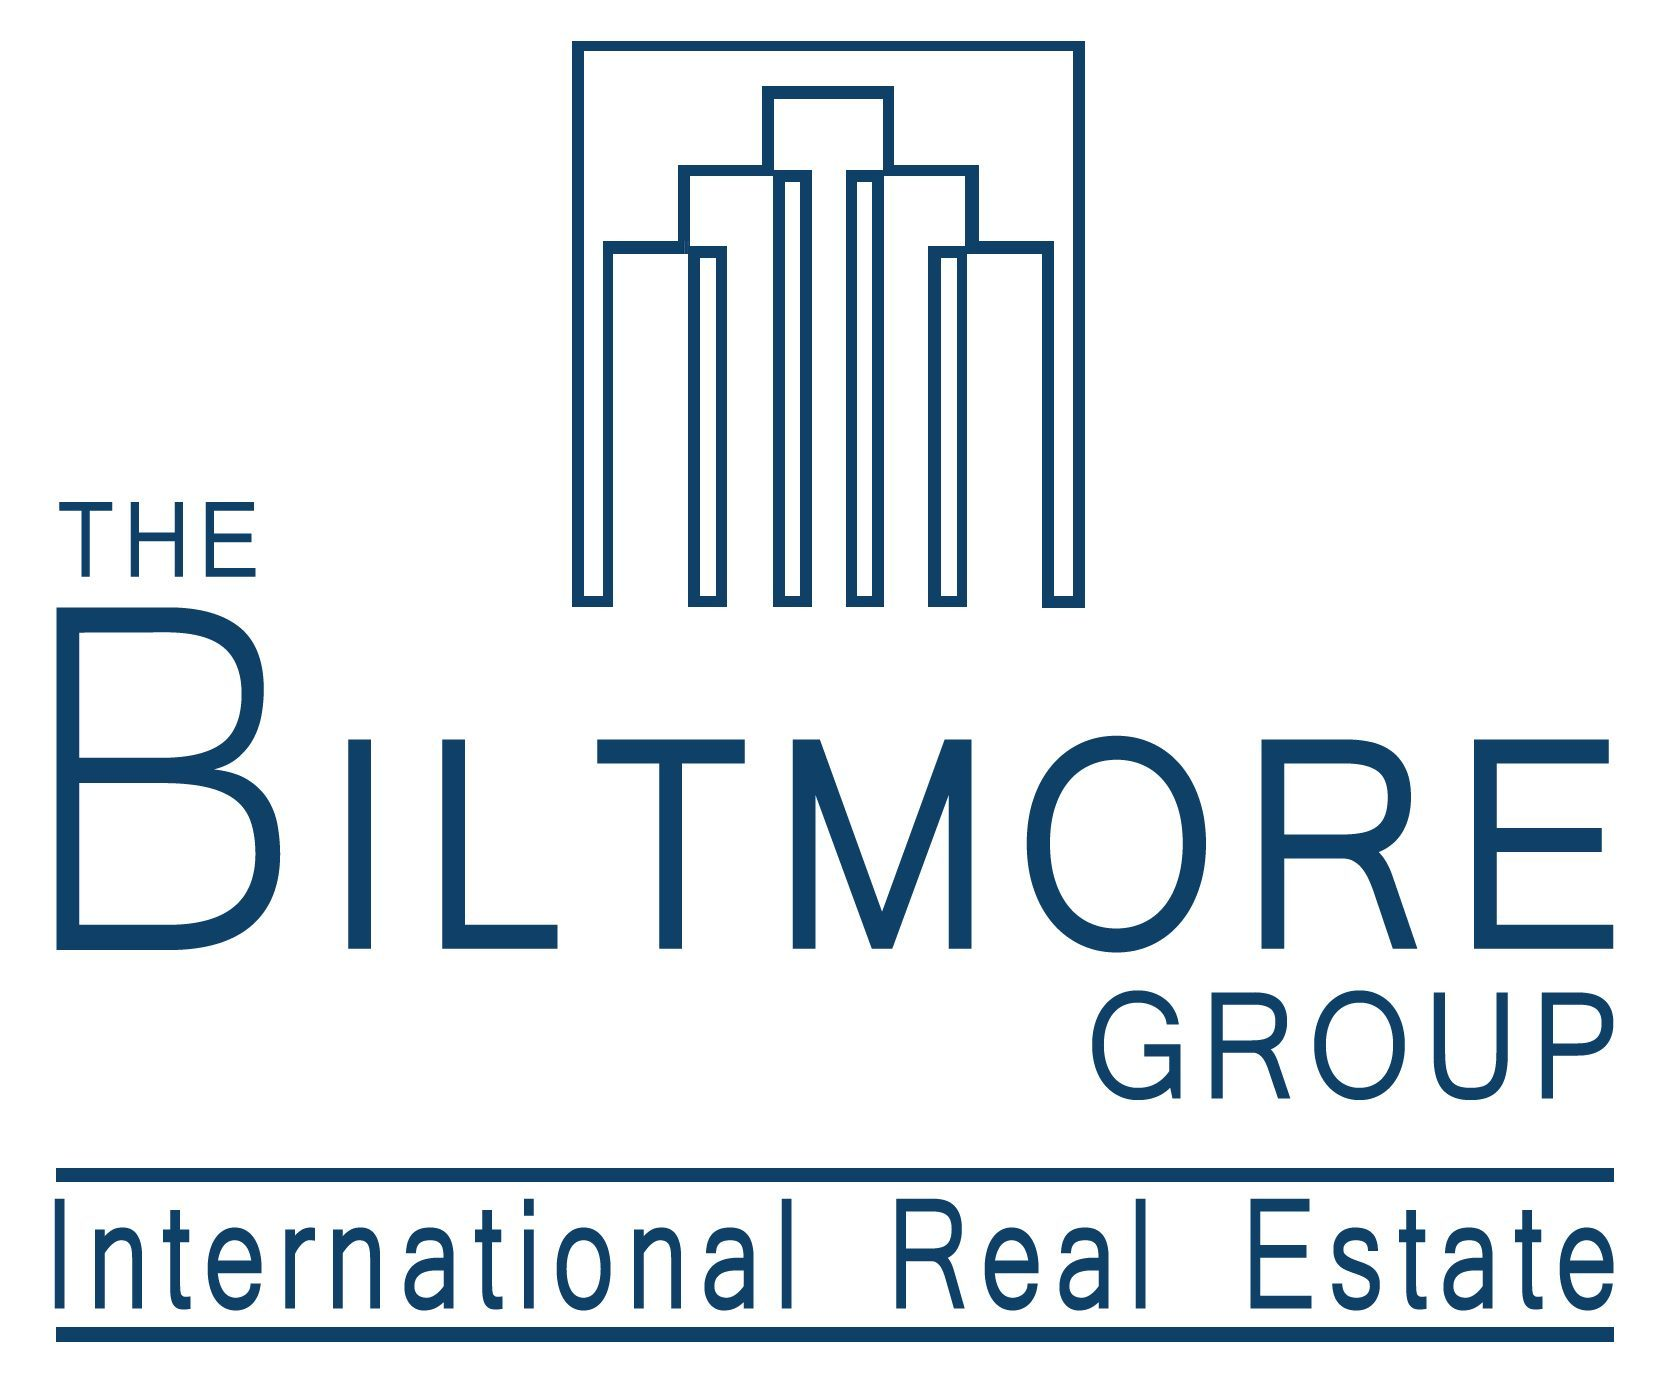 The Biltmore Group International Real Estate